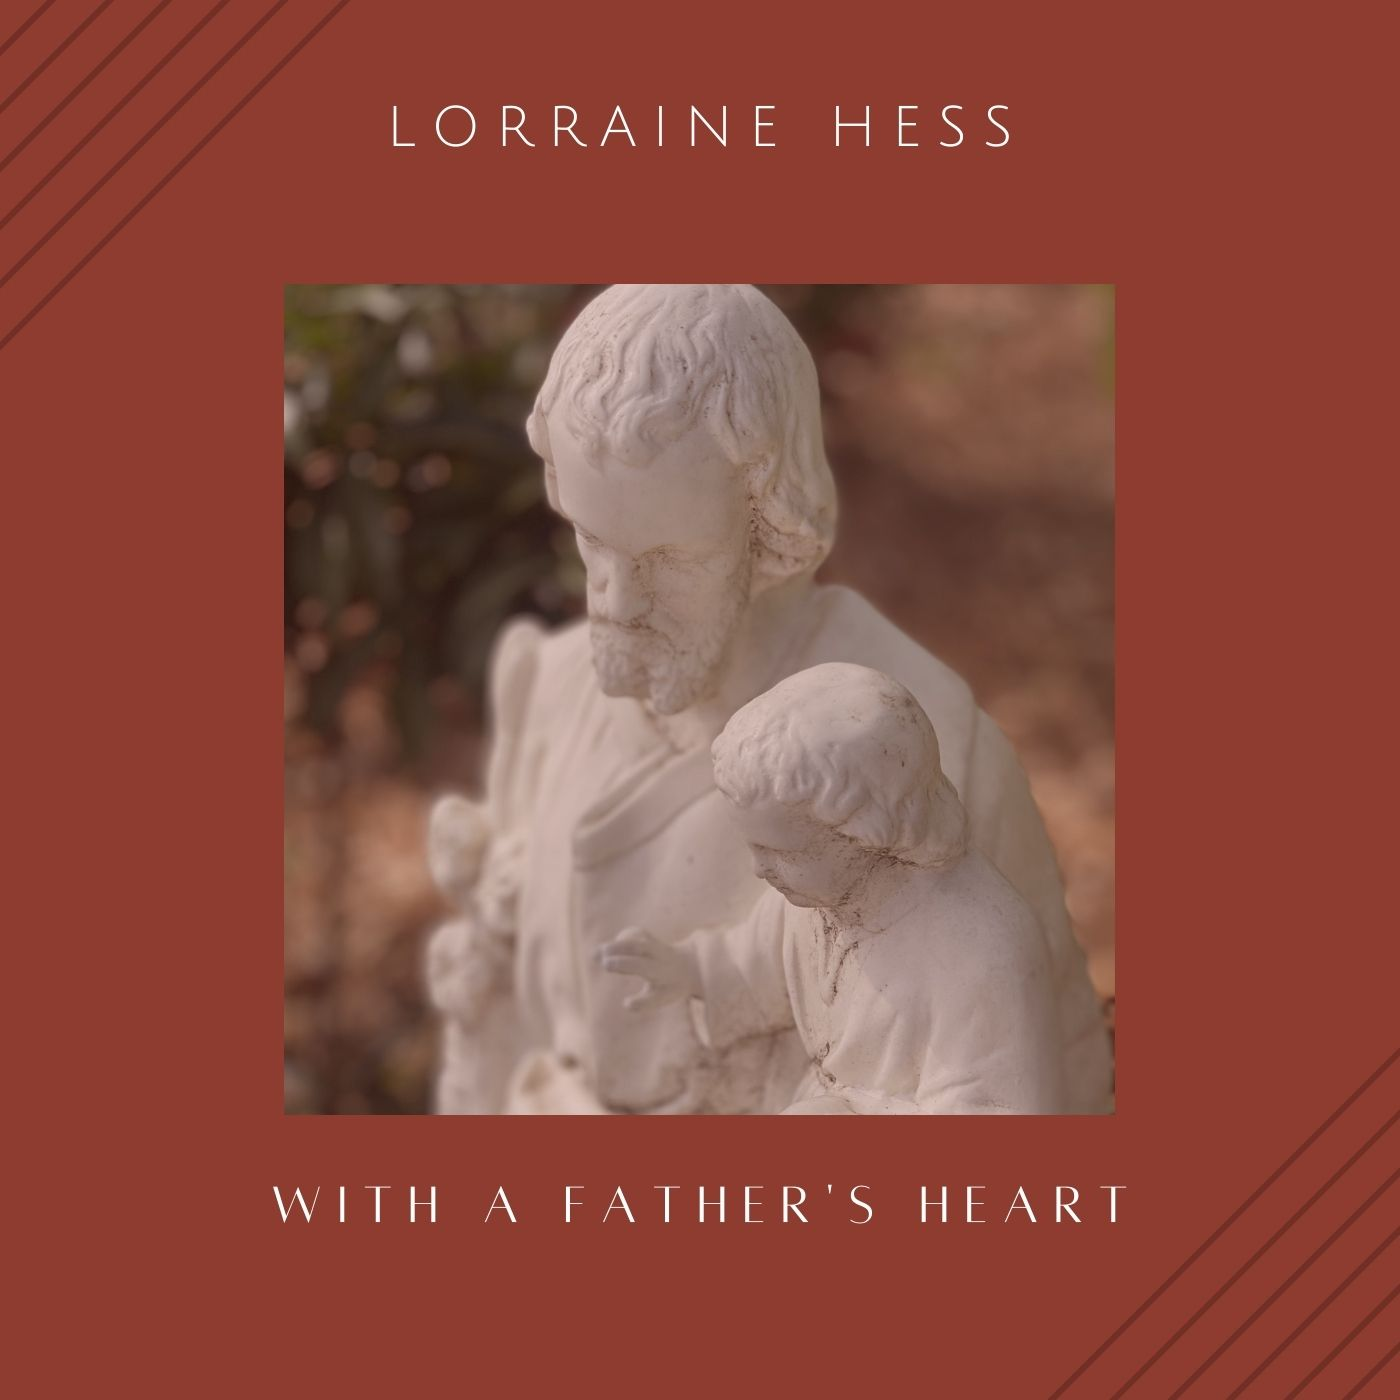 With a Father's Heart (Album Cover)